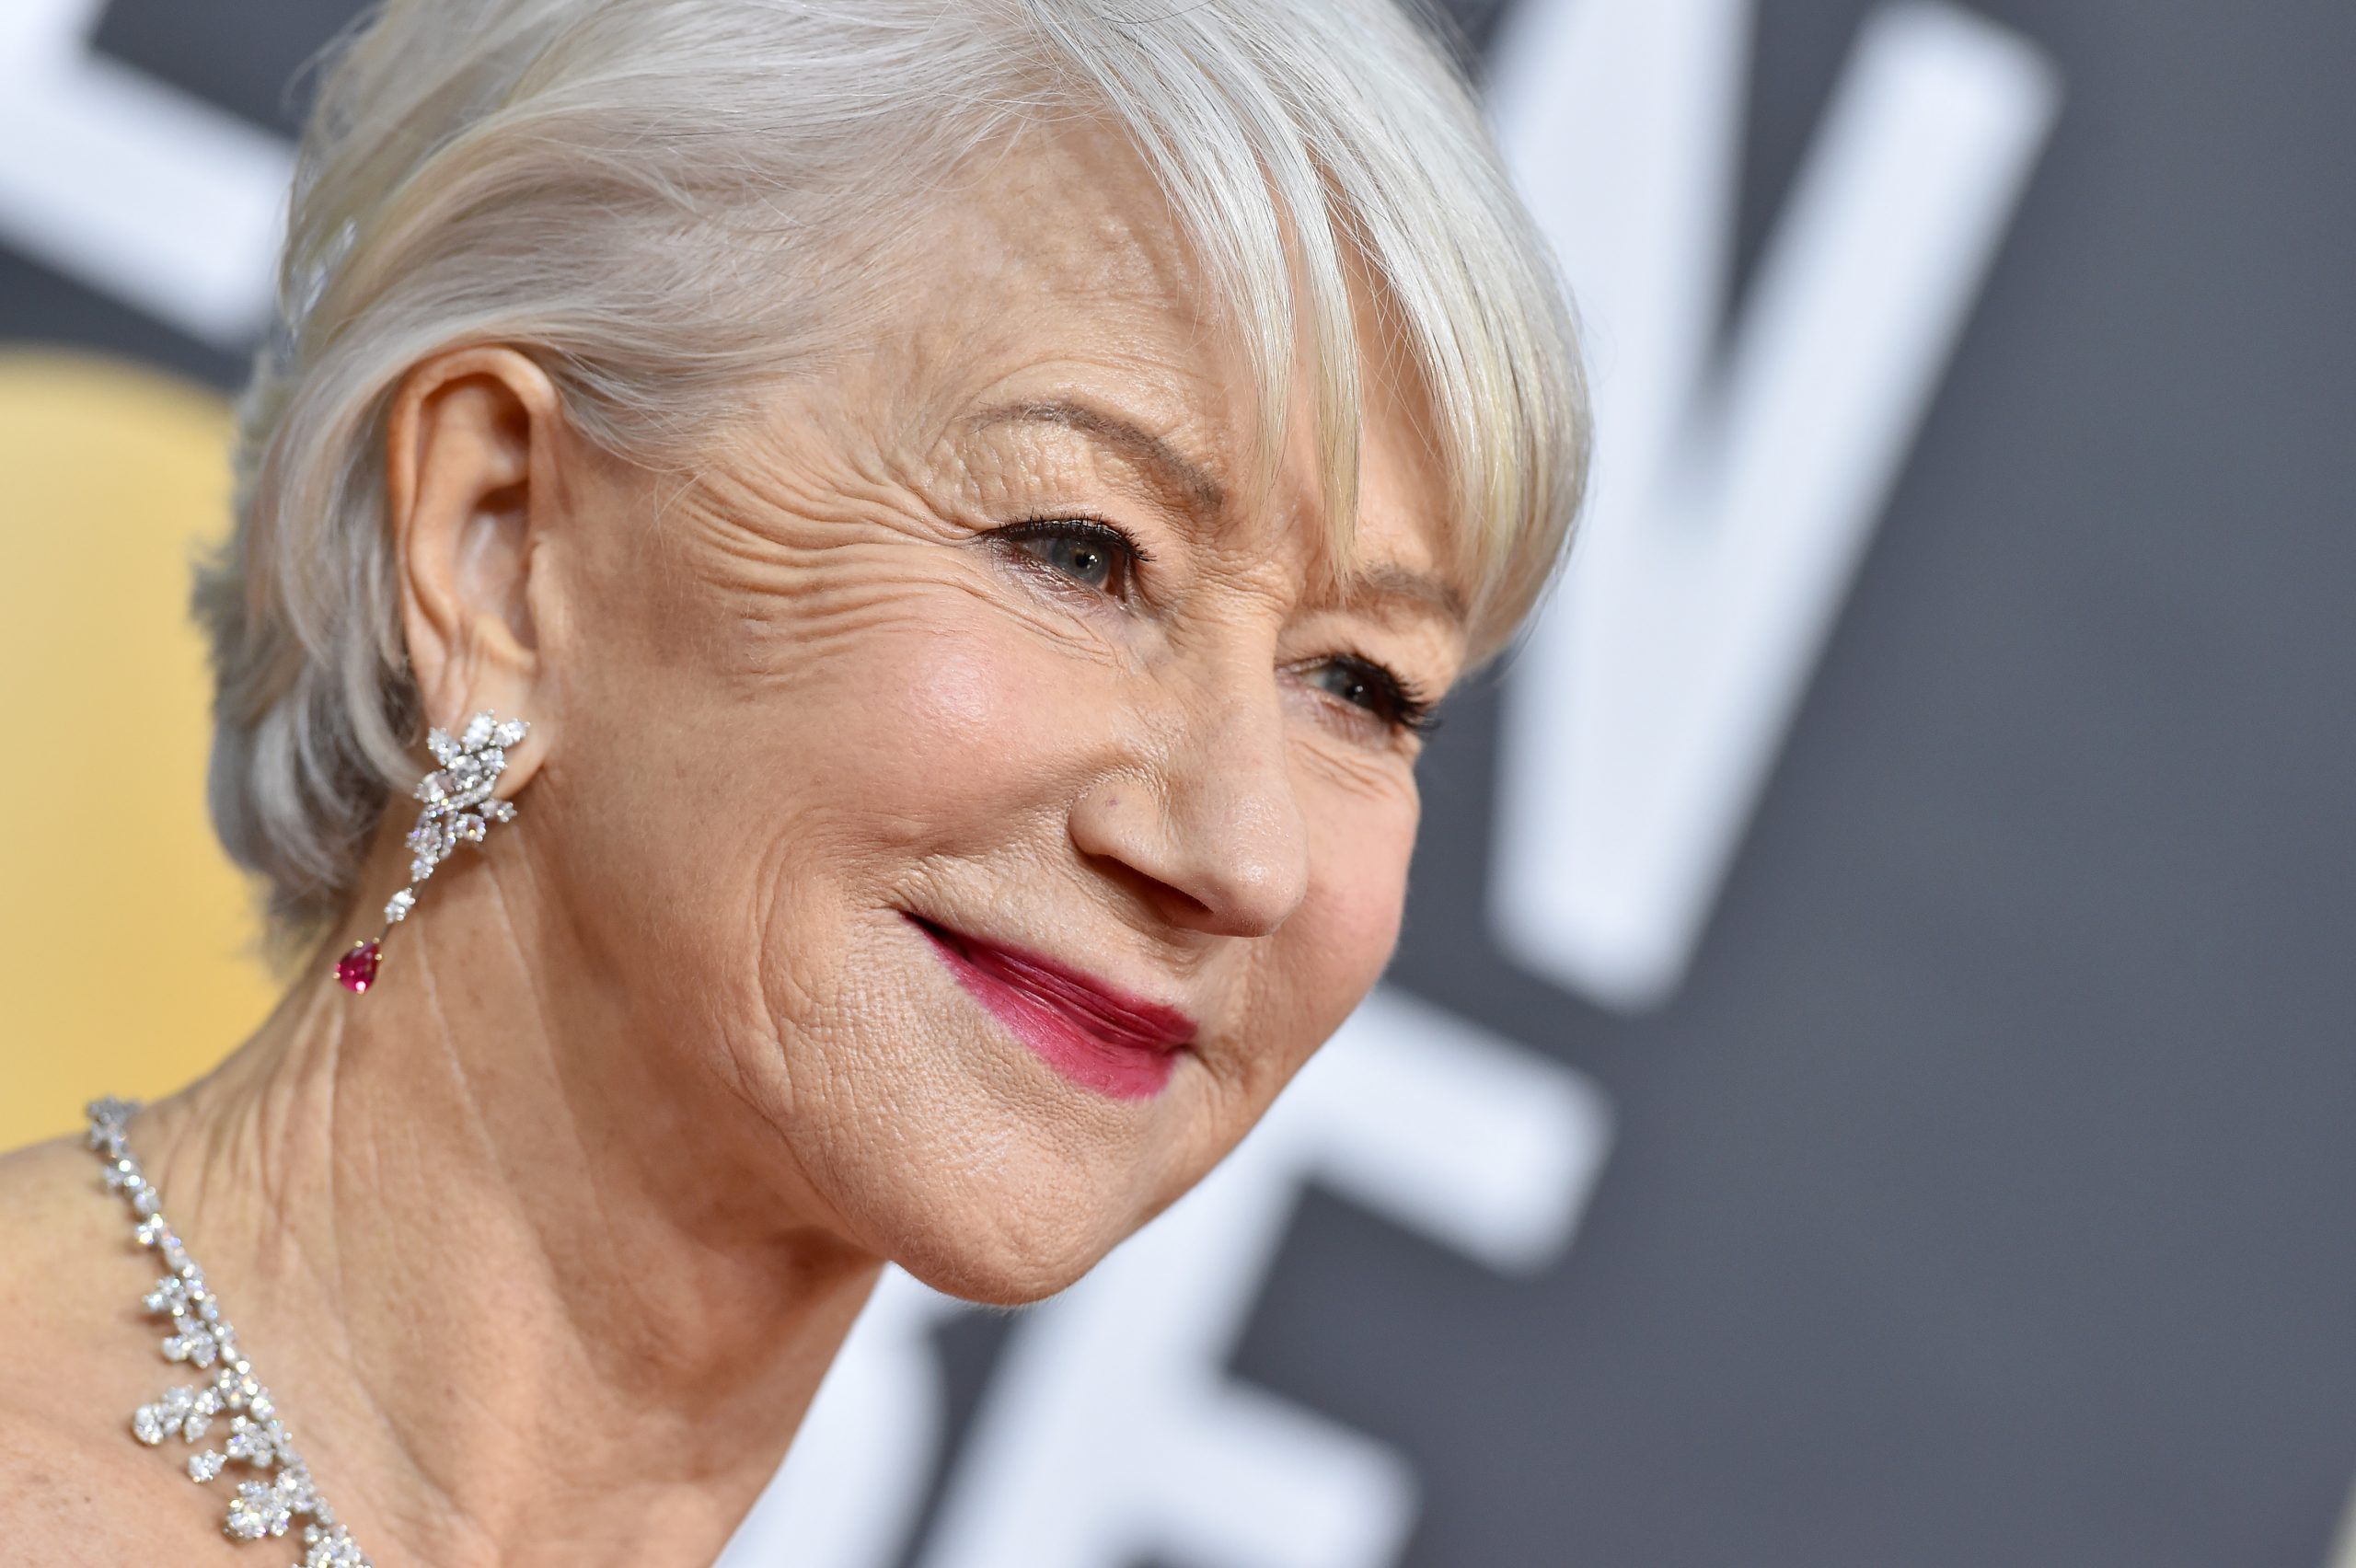 BEVERLY HILLS, CALIFORNIA - JANUARY 05: Helen Mirren attends the 77th Annual Golden Globe Awards at The Beverly Hilton Hotel on January 05, 2020 in Beverly Hills, California. (Photo by Axelle/Bauer-Griffin/FilmMagic)